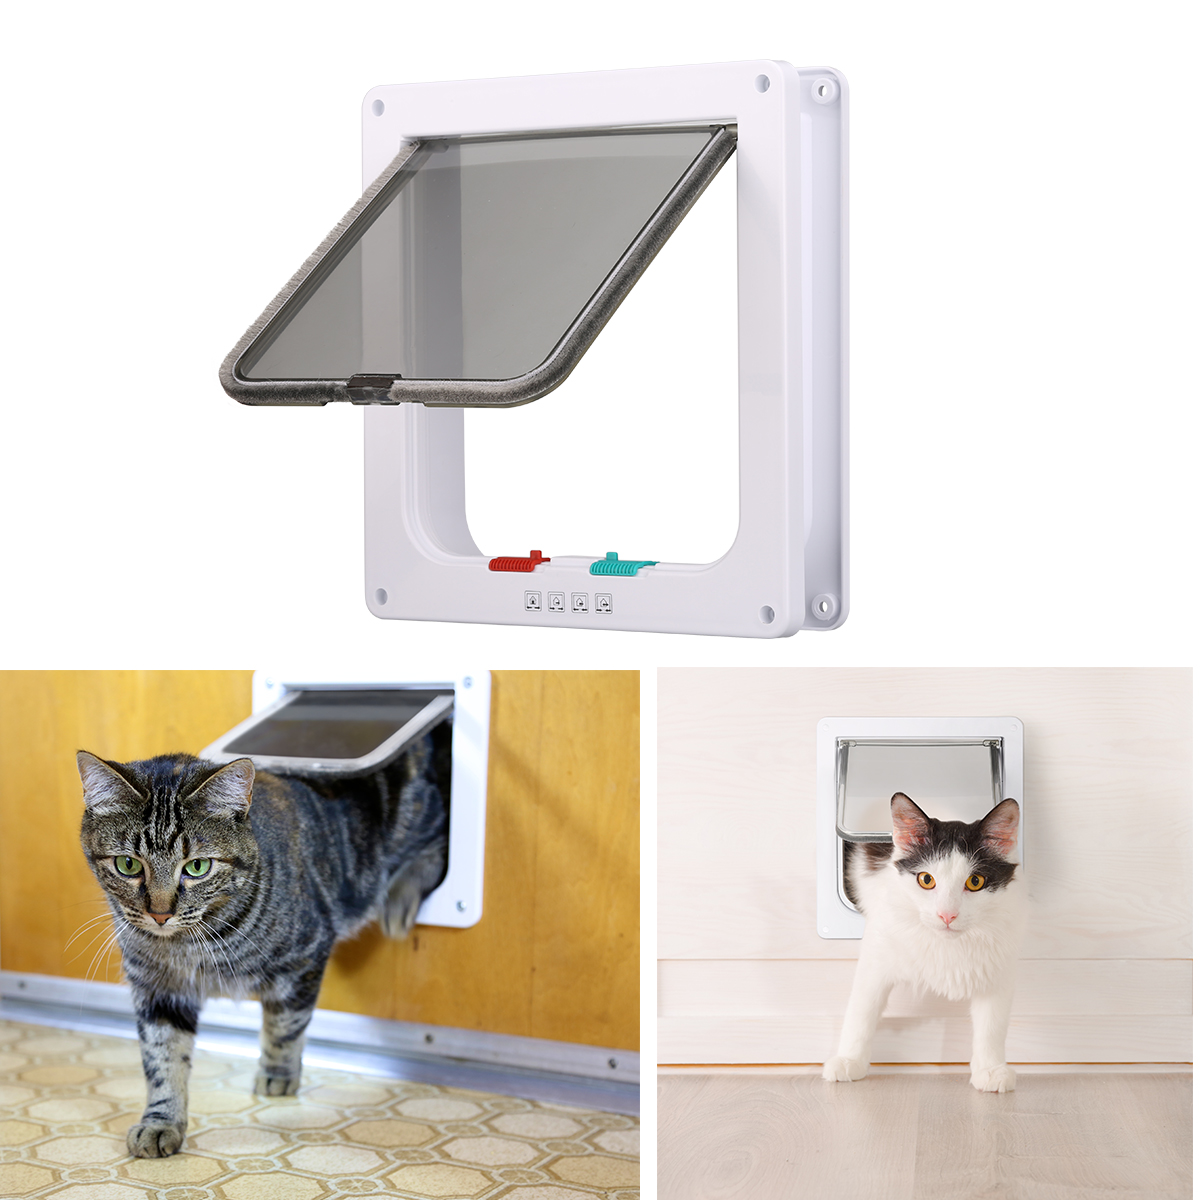 4 Way Pet Cat Puppy Dog Supplies Lock Lockable Safe Flap Door White Cat Gates S Size